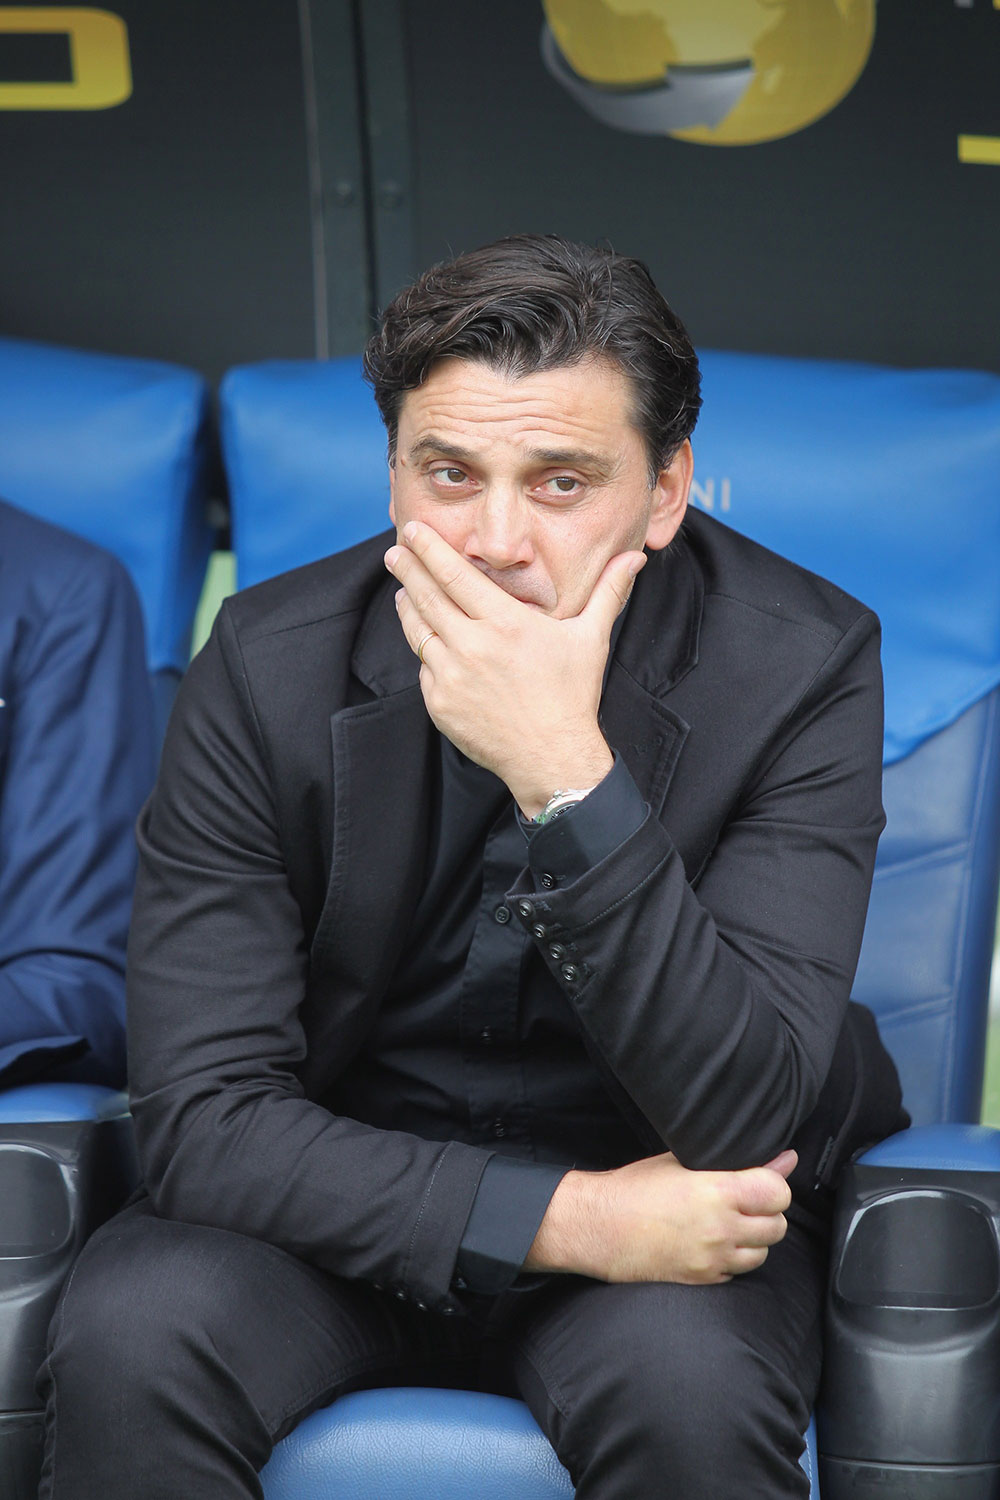 Vincenzo Montella during Lazio-Milan at Stadio Olimpico on the 10th of September, 2017. (Photo by Paolo Bruno/Getty Images)